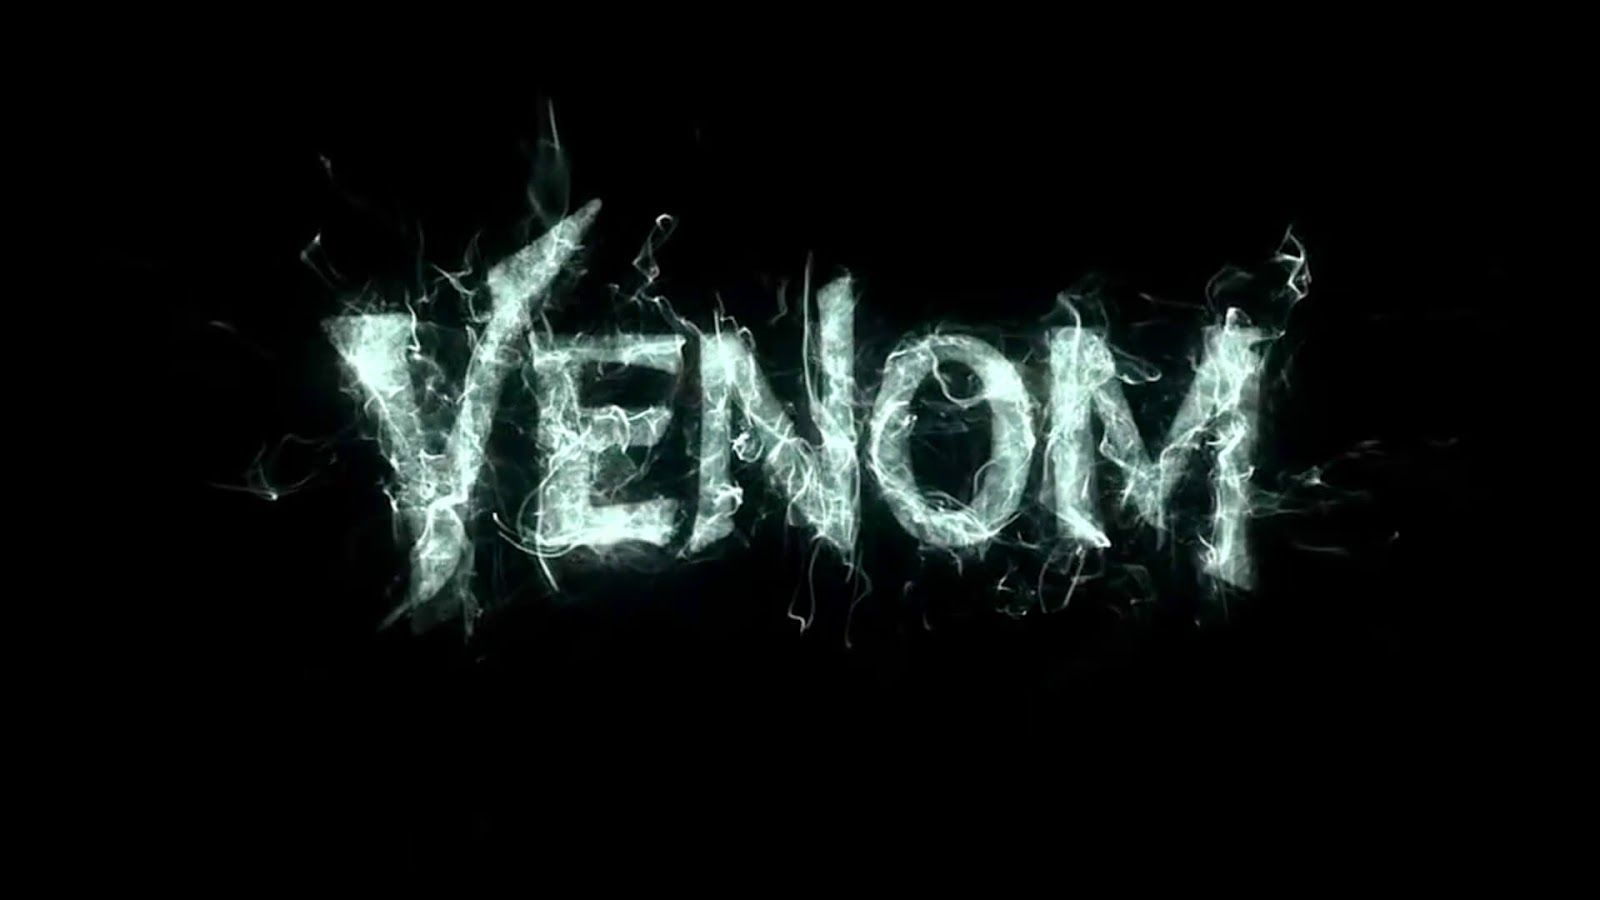 venom eminem download, eminem - venom